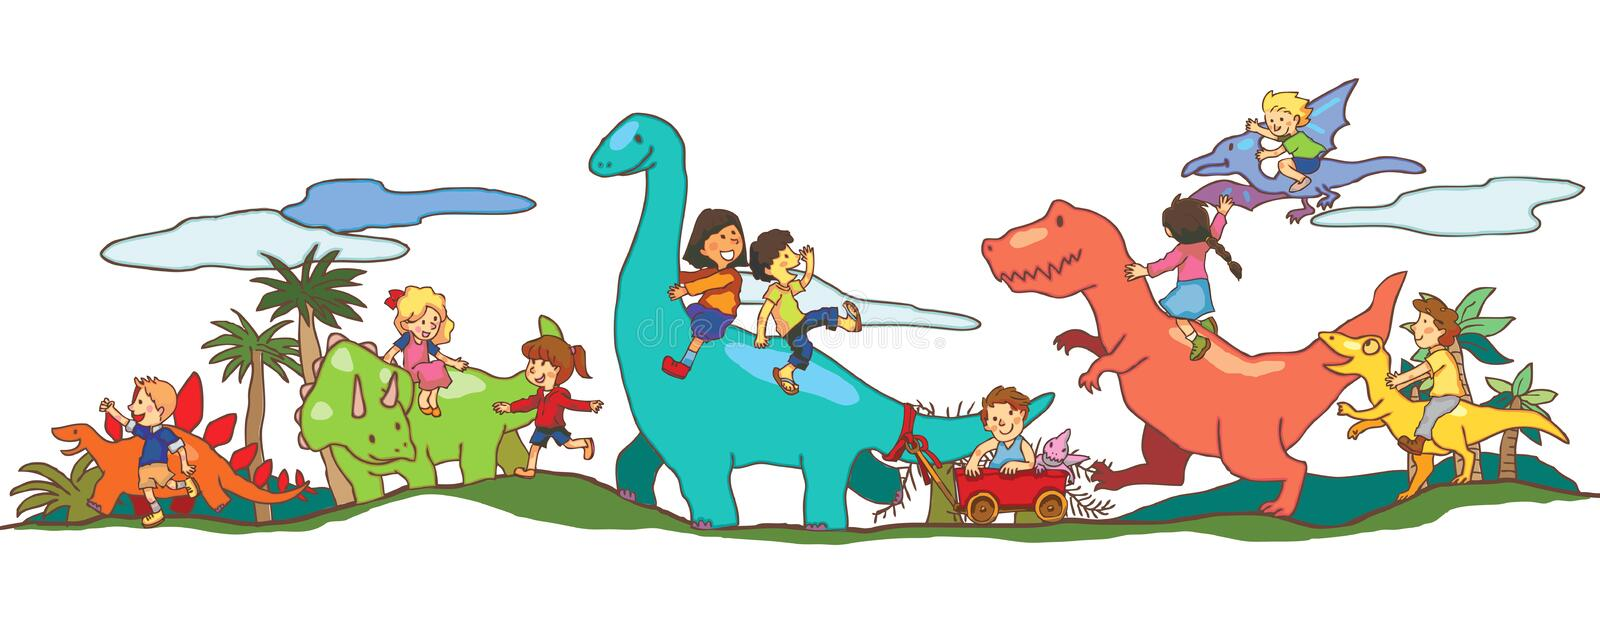 Children play with Dinosaurs in Dinoworld vector illustration